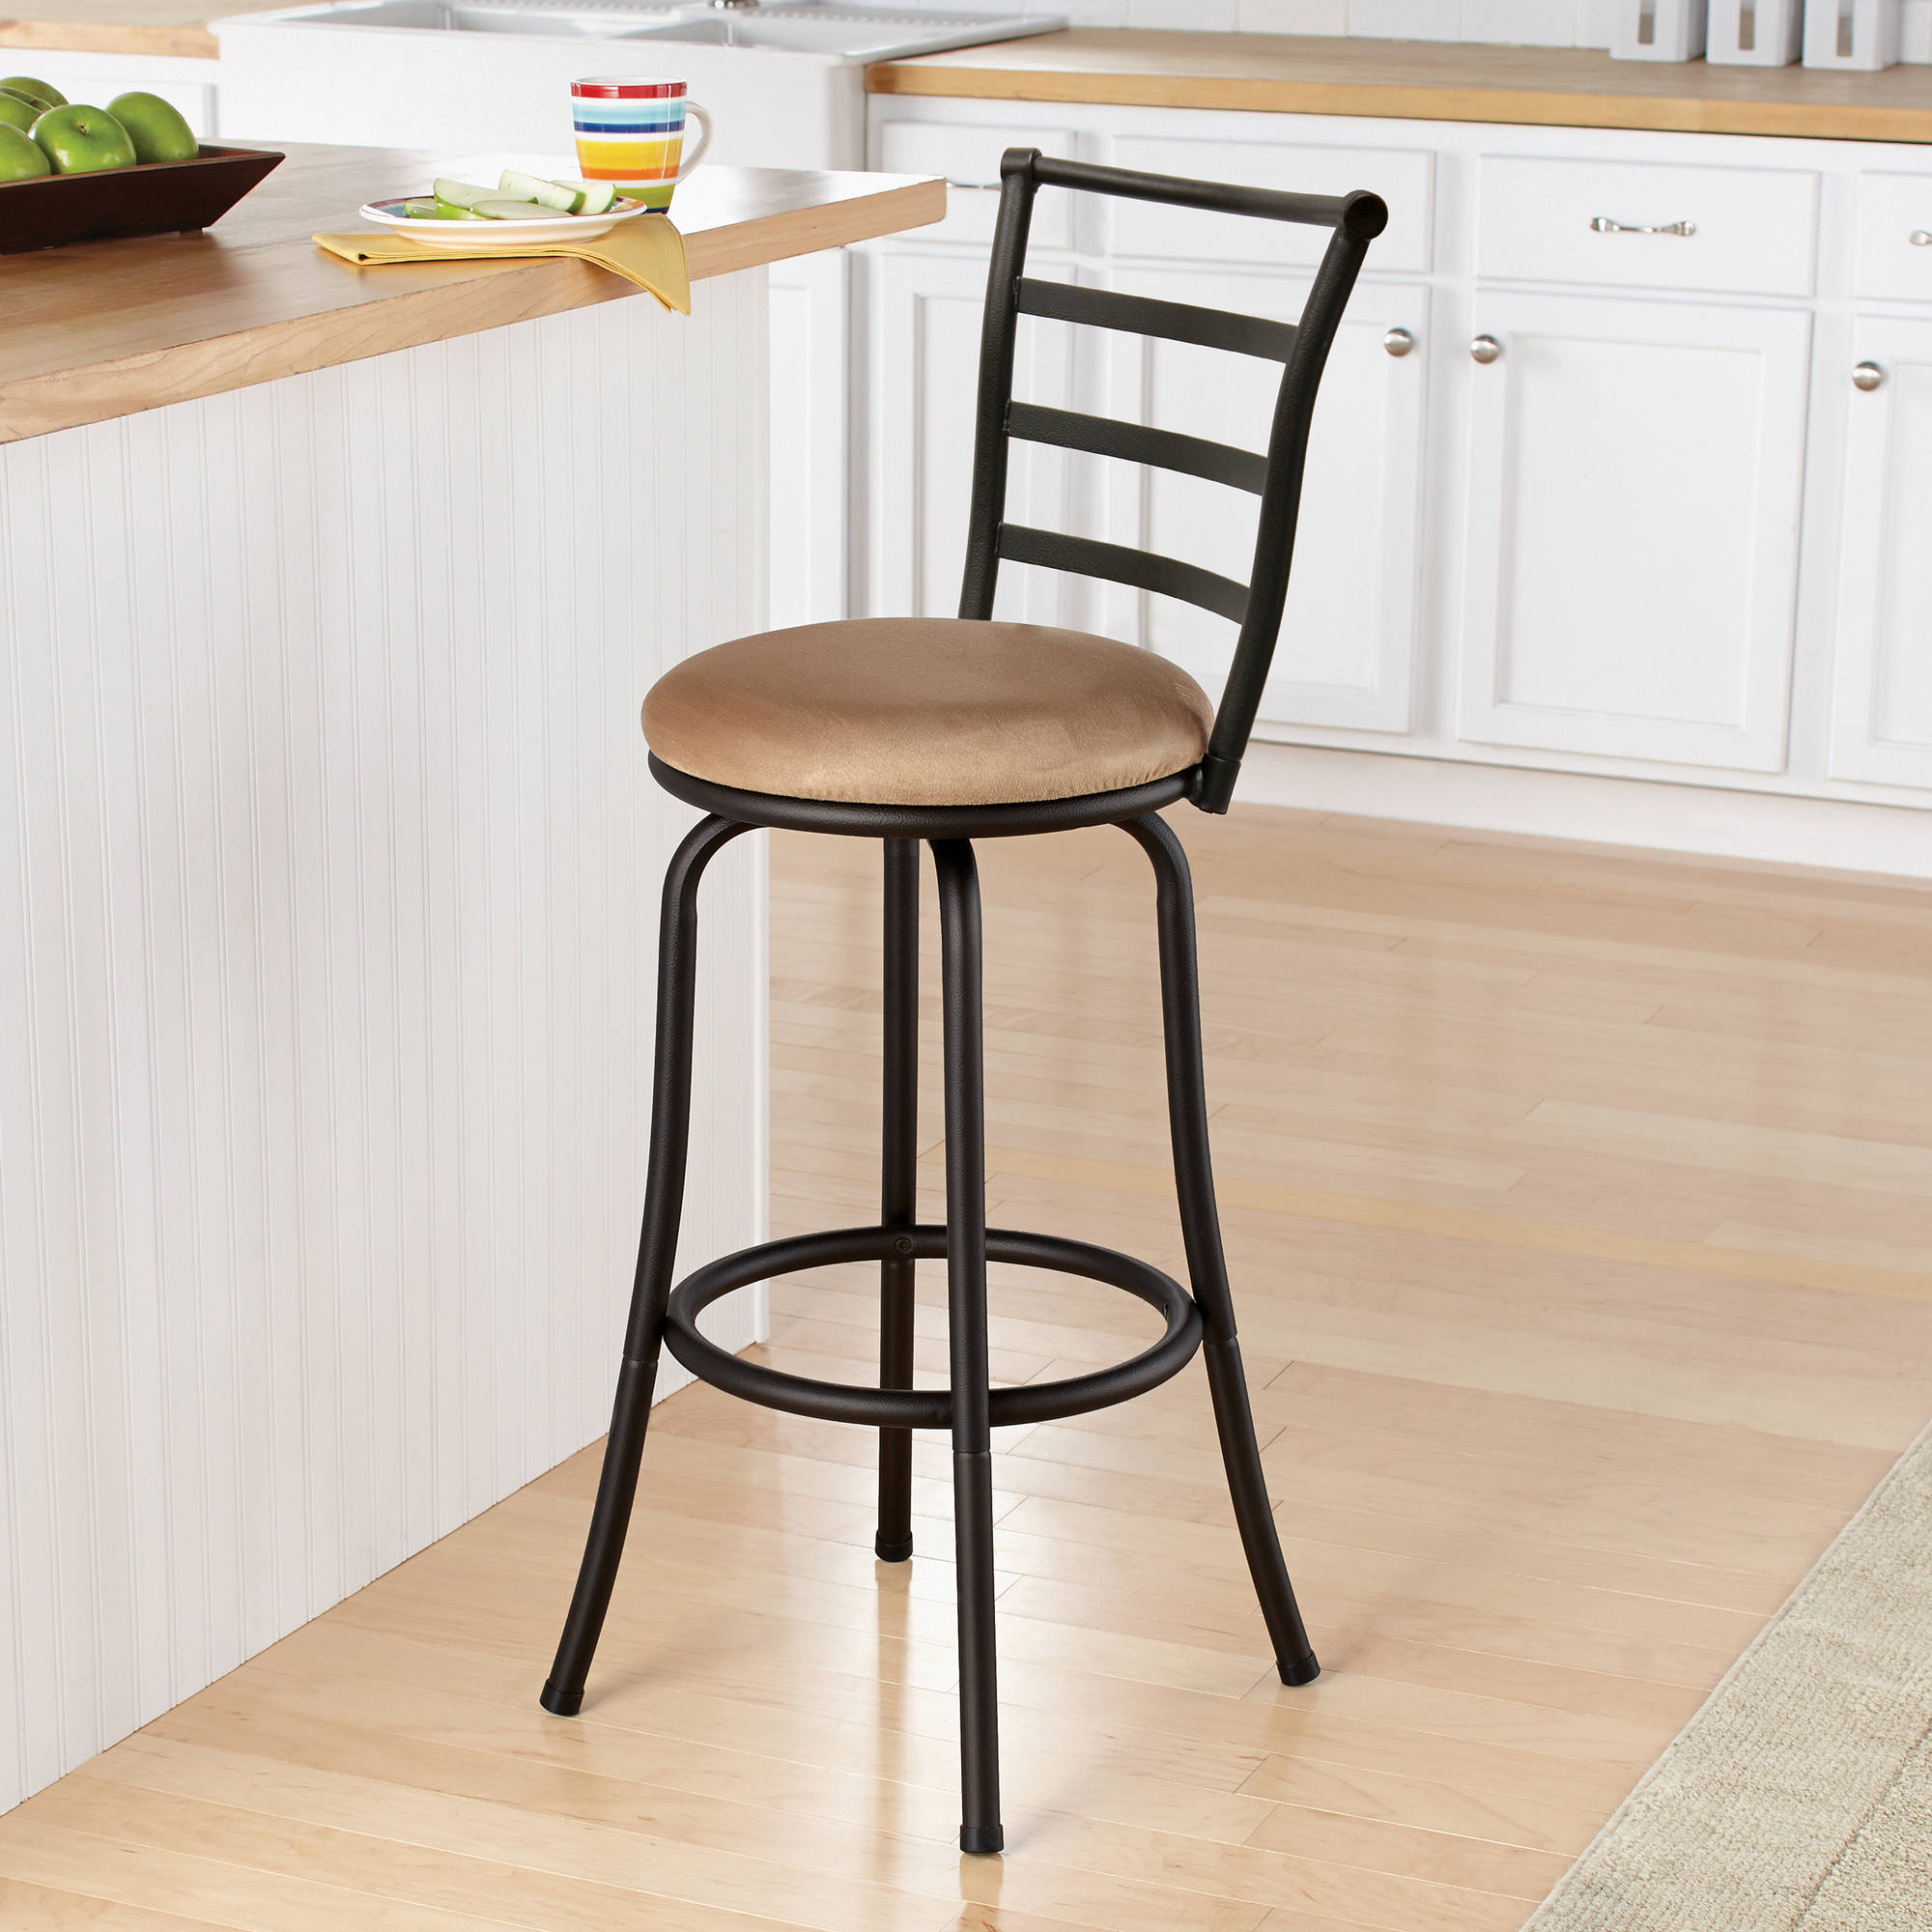 Mainstays 29  Ladder Back Black Barstool Multiple Colors Image 1 ... & Mainstays 29